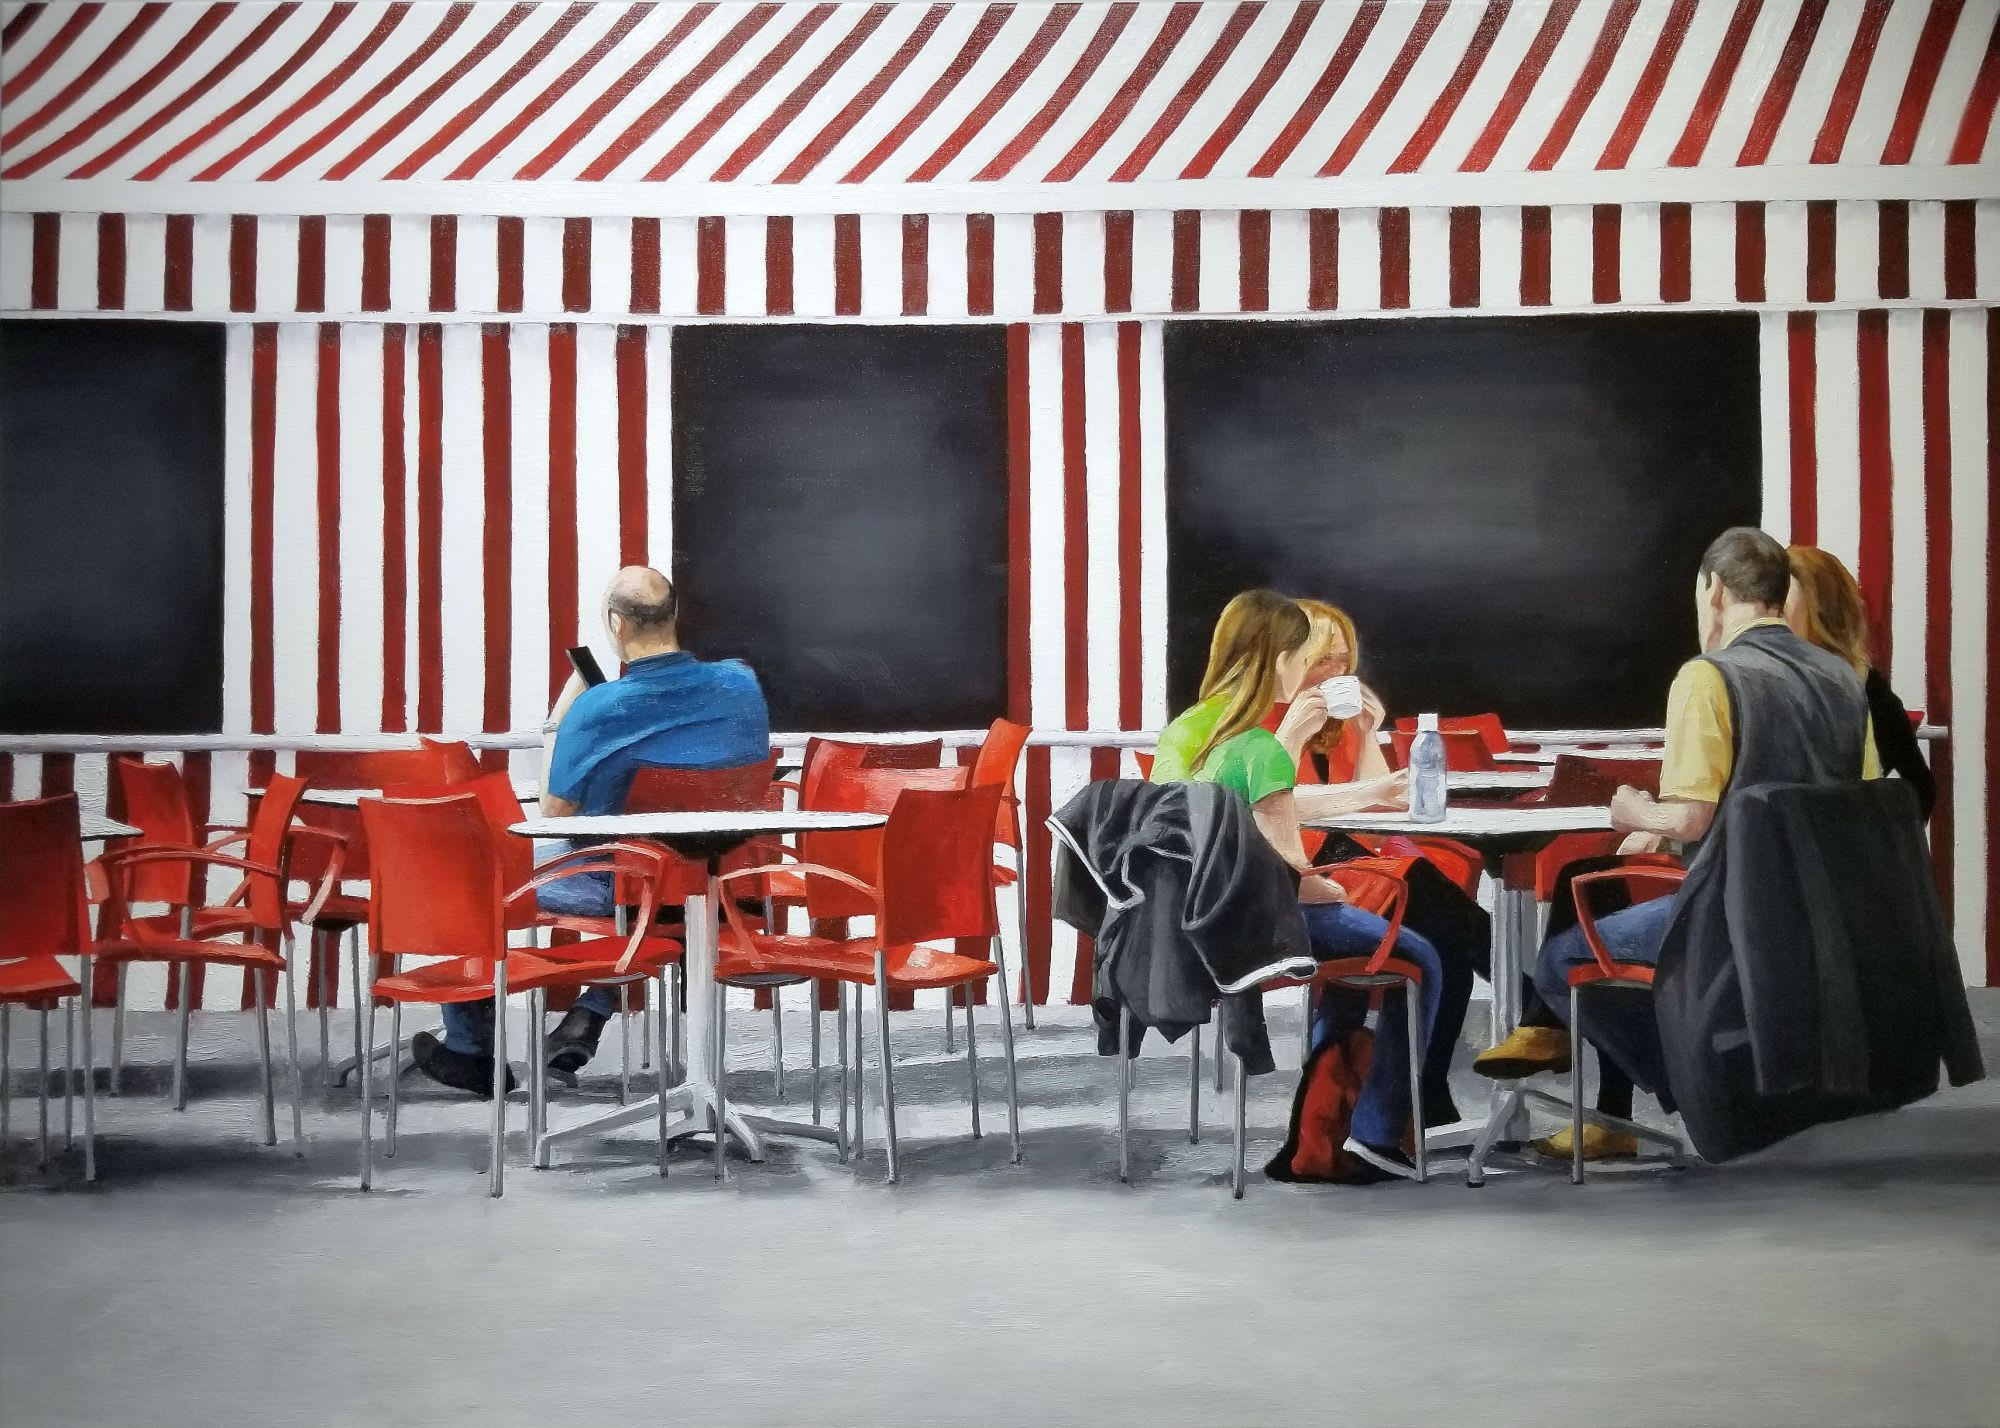 'Le Cafe' by Maria Carbonell at Gallery 133